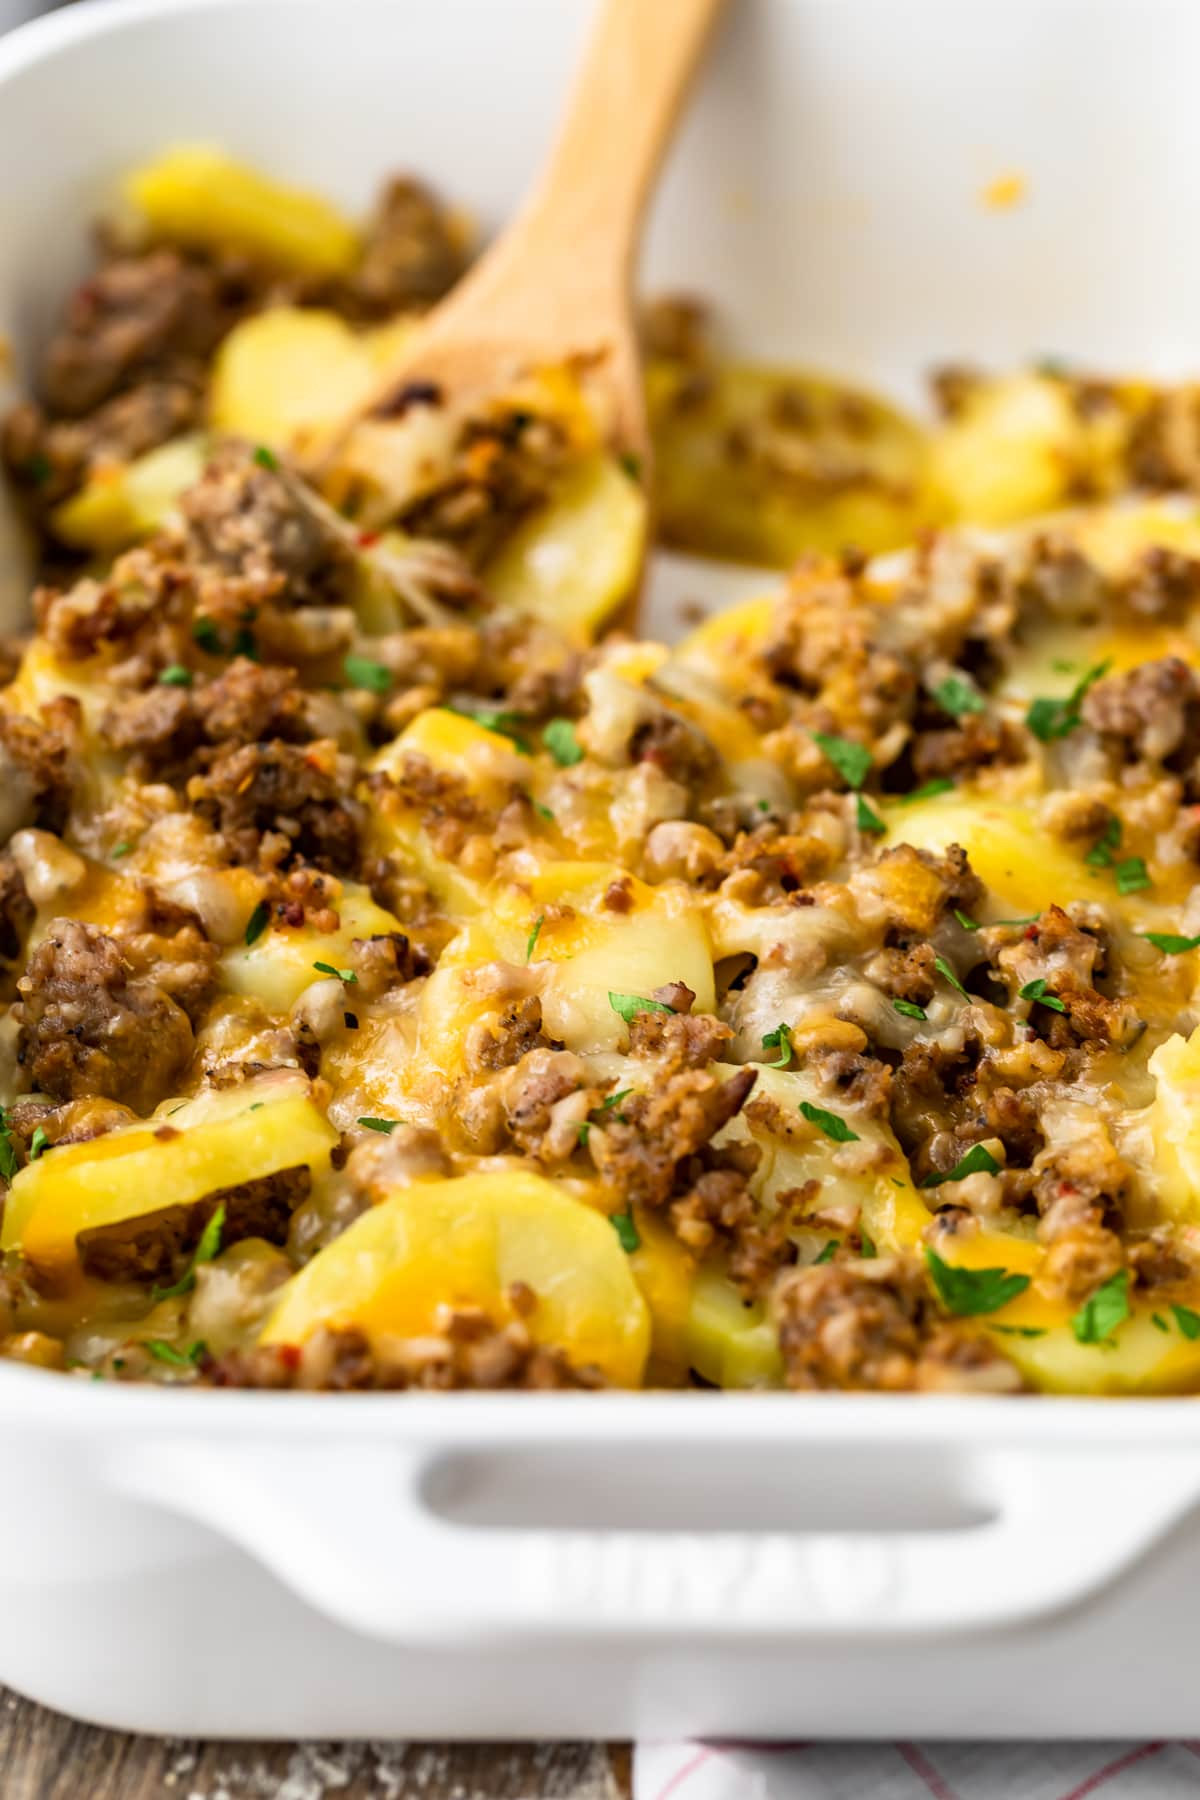 sausage and potato casserole in a white dish with a wooden spoon